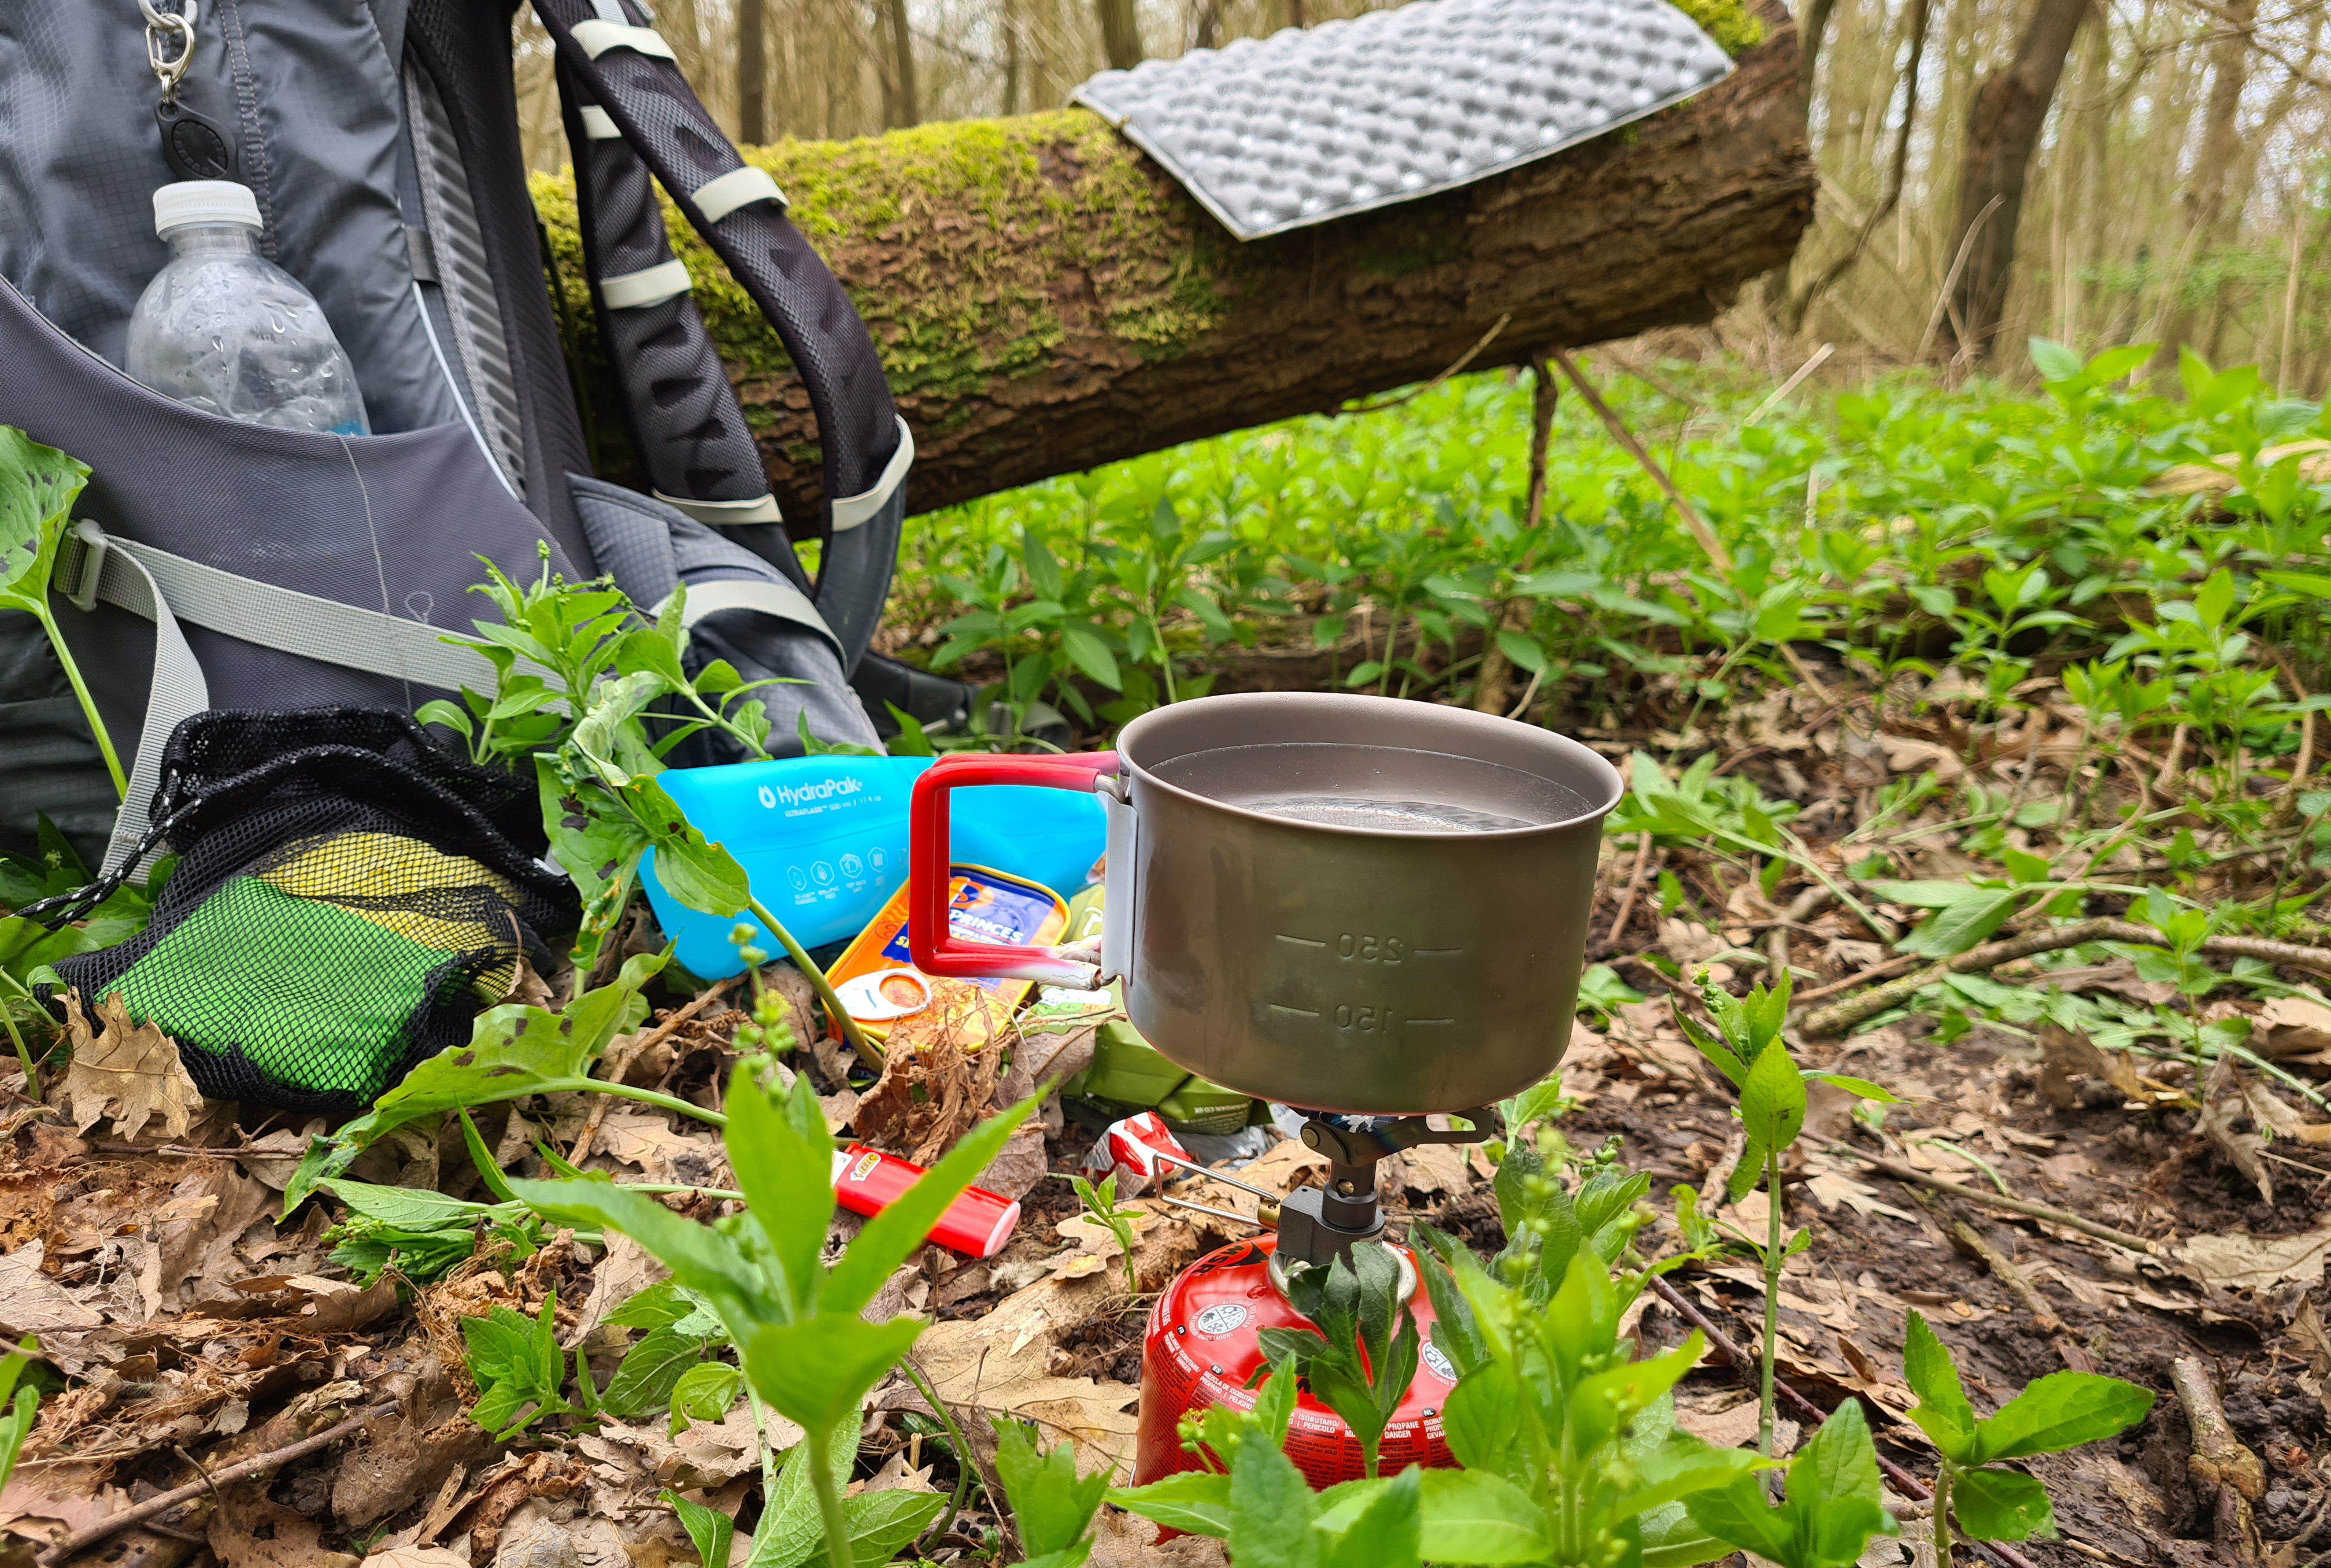 BRS 3000-T in use on a day hike on the North Downs Way. Paired with a small gas cartridge, 450ml Evernew titanium mug and mini Bic lighter, this makes one of the lightest and smallest cookset-ups possible